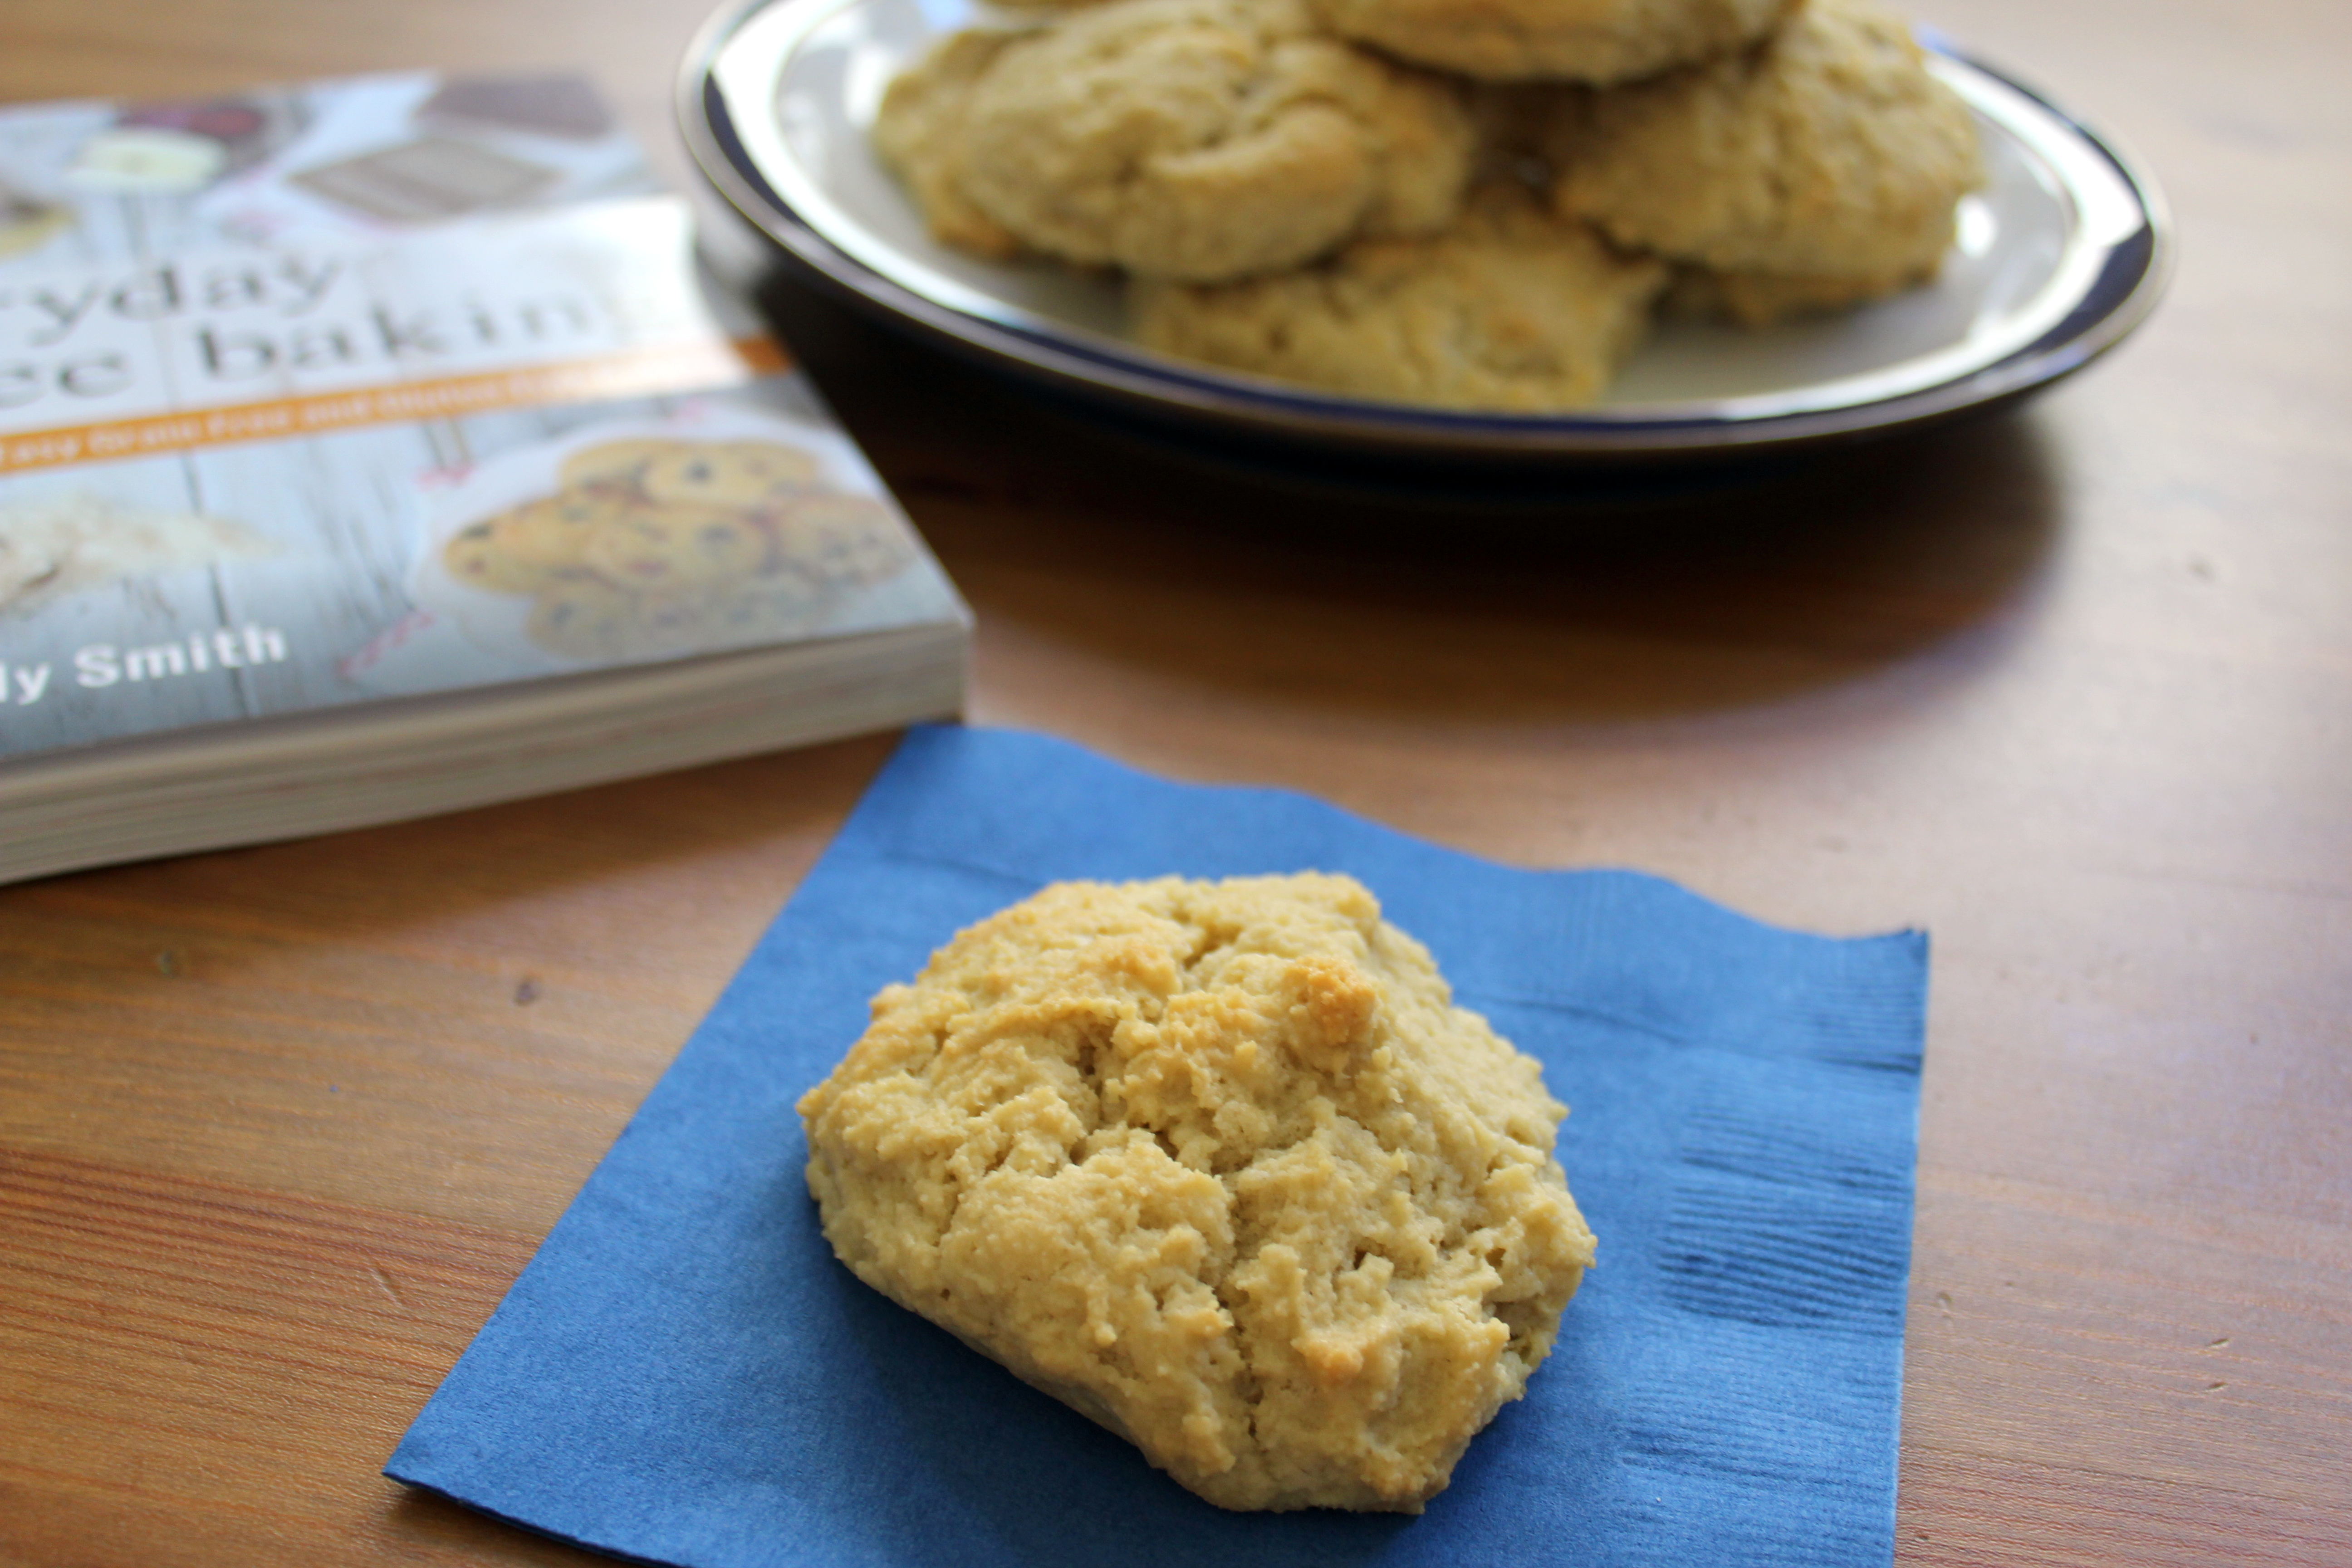 Can Biscuits Be Made With Cake Flour